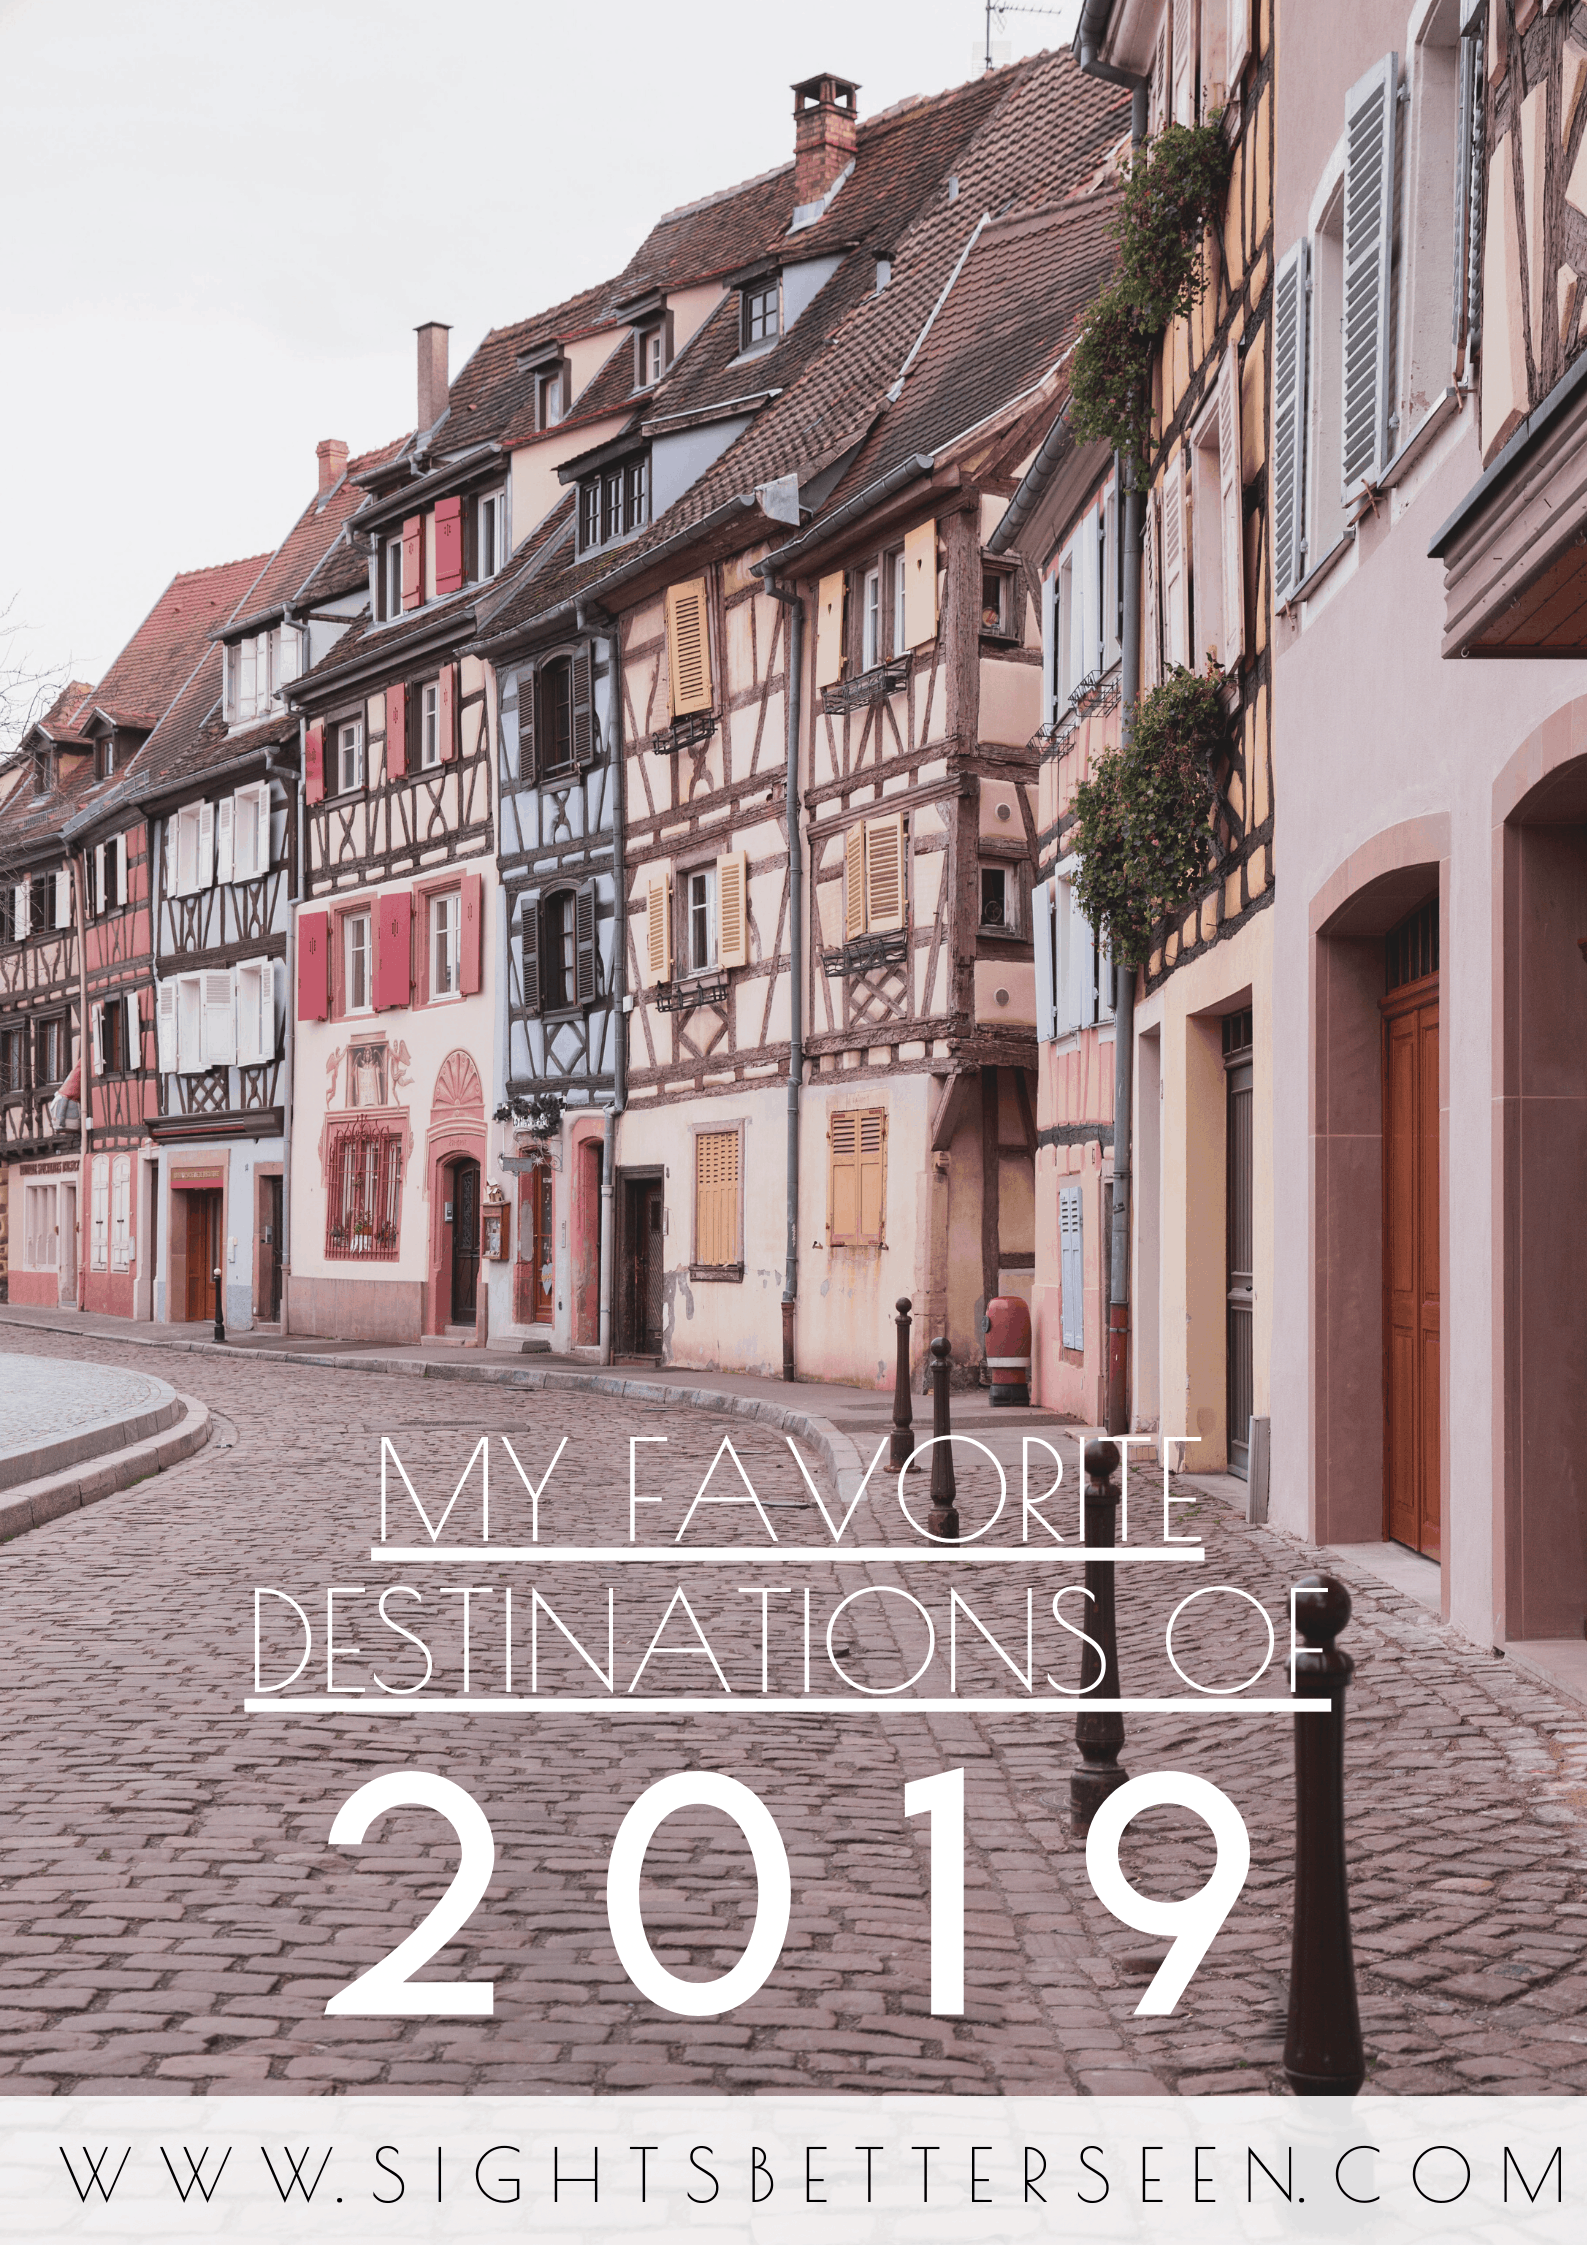 My favorite destinations of 2019 and some places to travel in 2020.